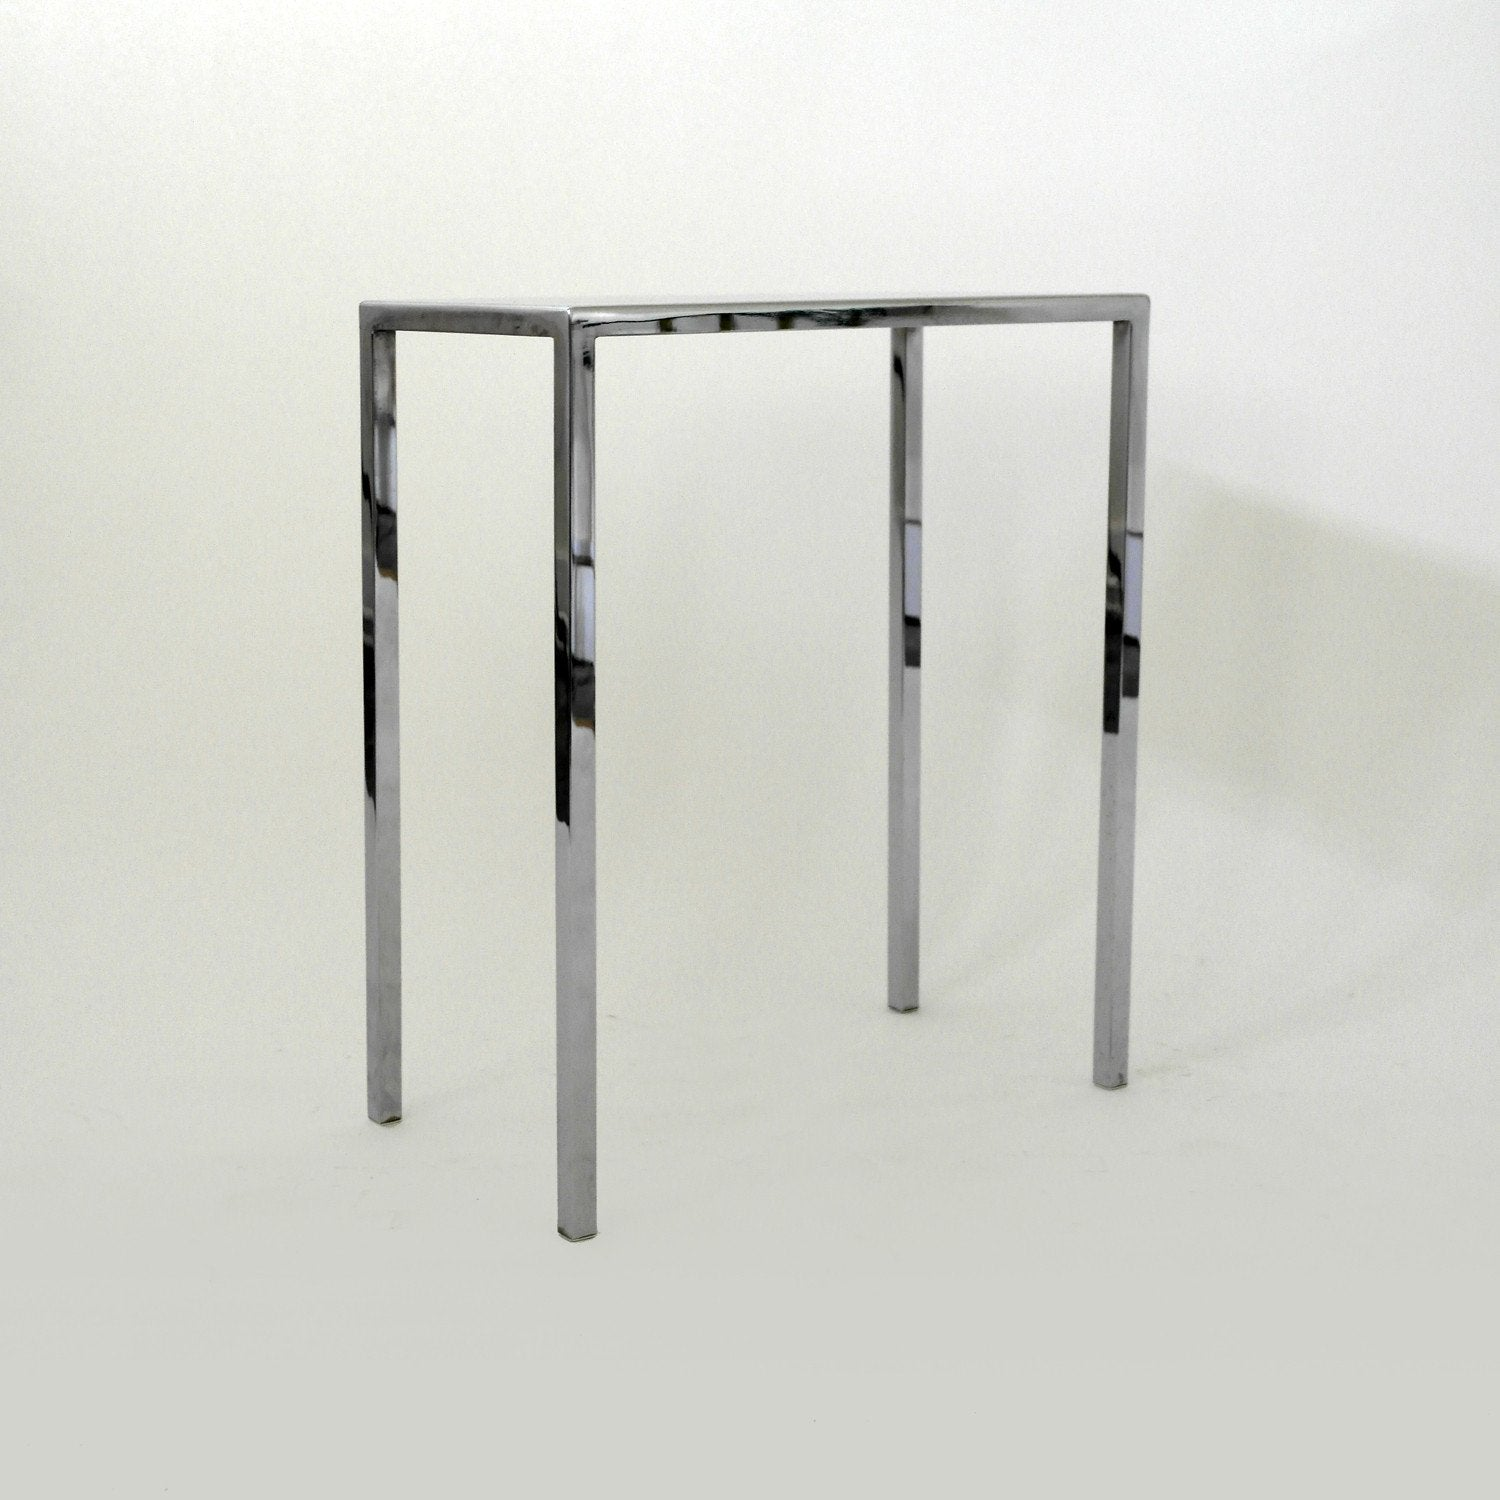 pair of chrome side tables by philippe starck – a modern grand tour -